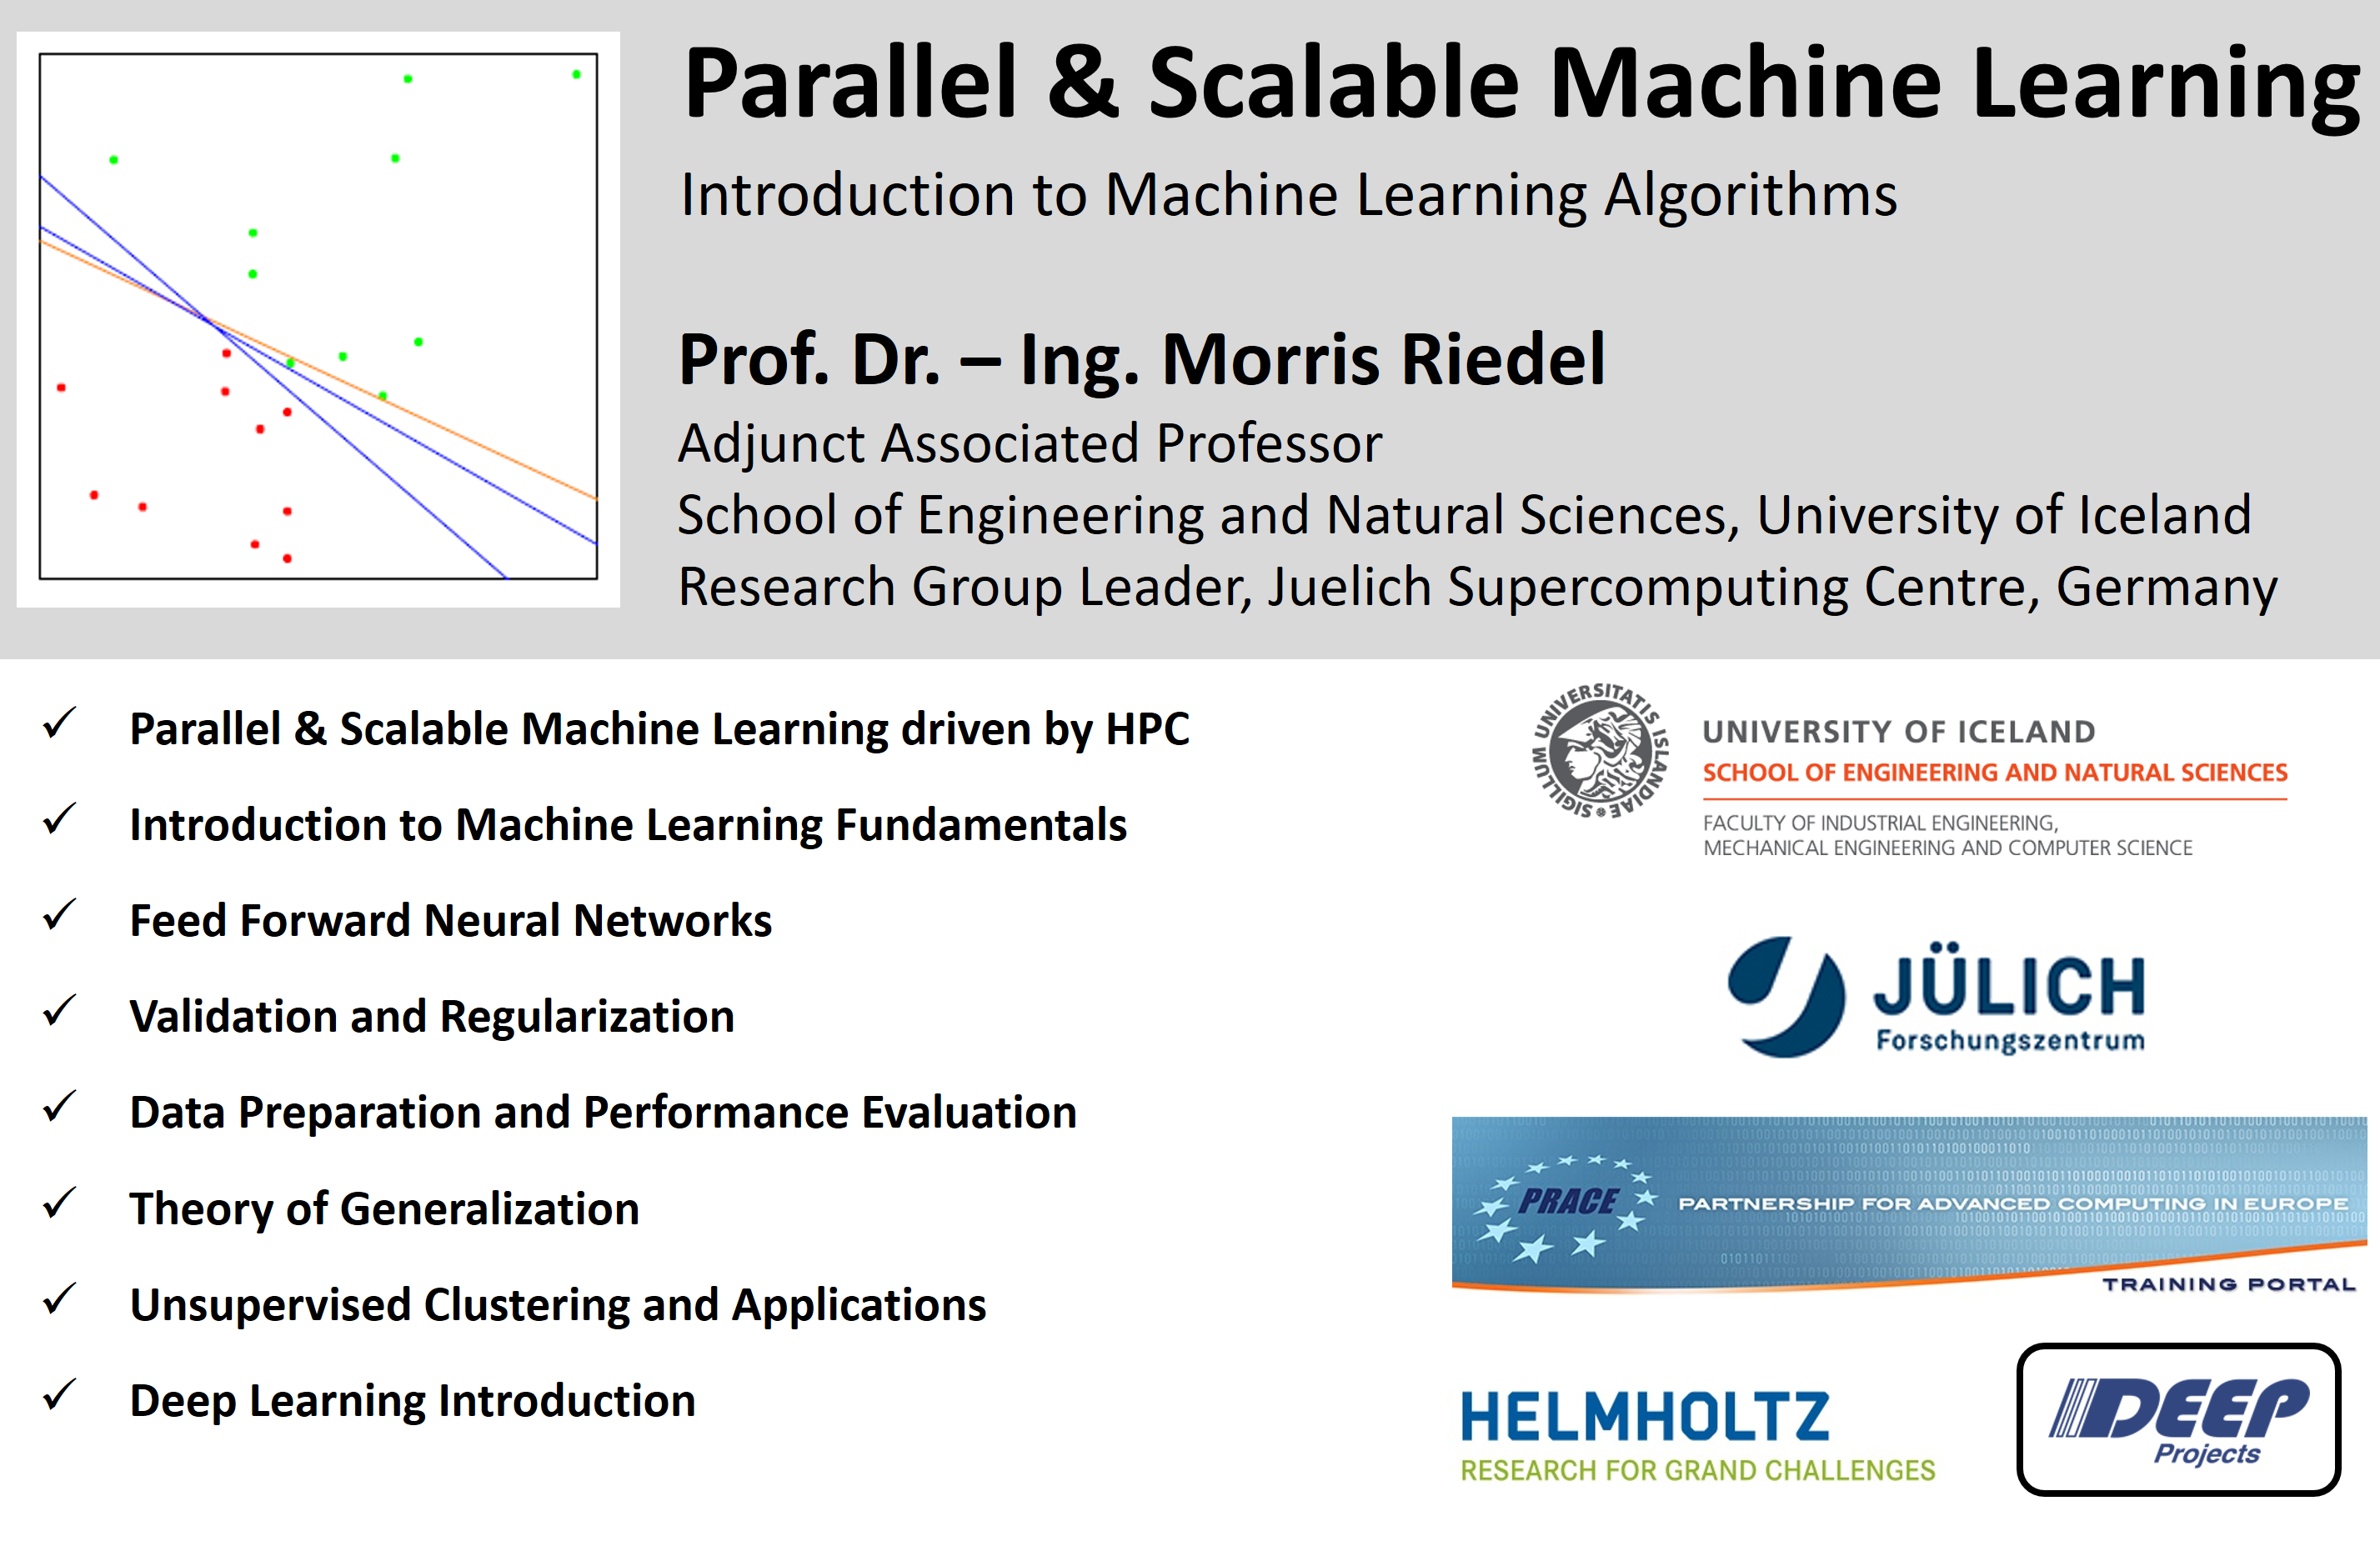 PRACE Tutorial - Parallel and Scalable Machine Learning